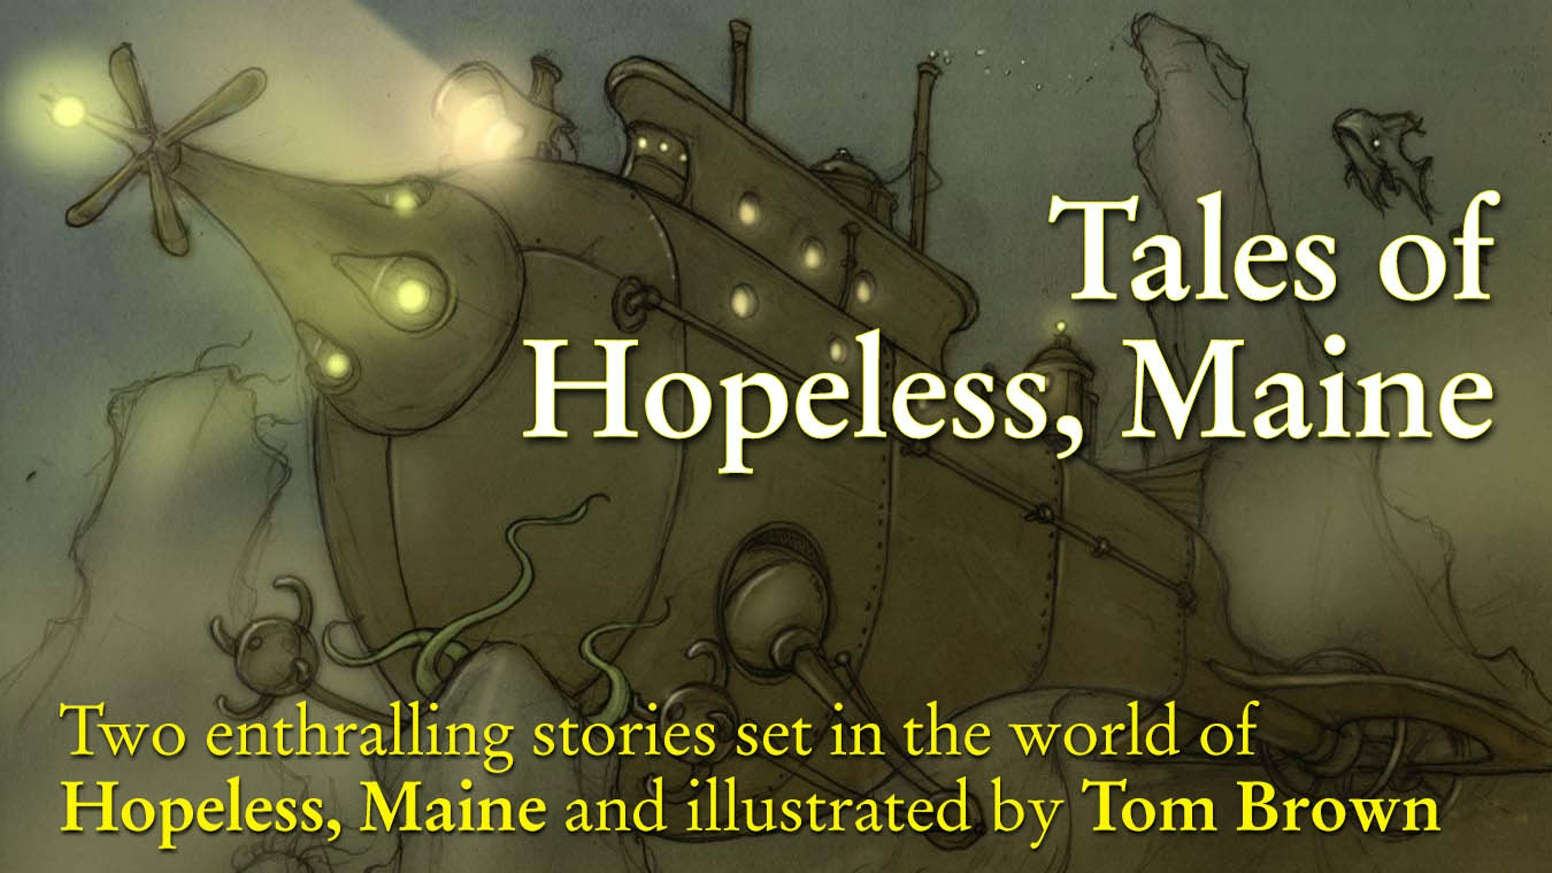 Two illustrated books from the world of Hopeless, Maine